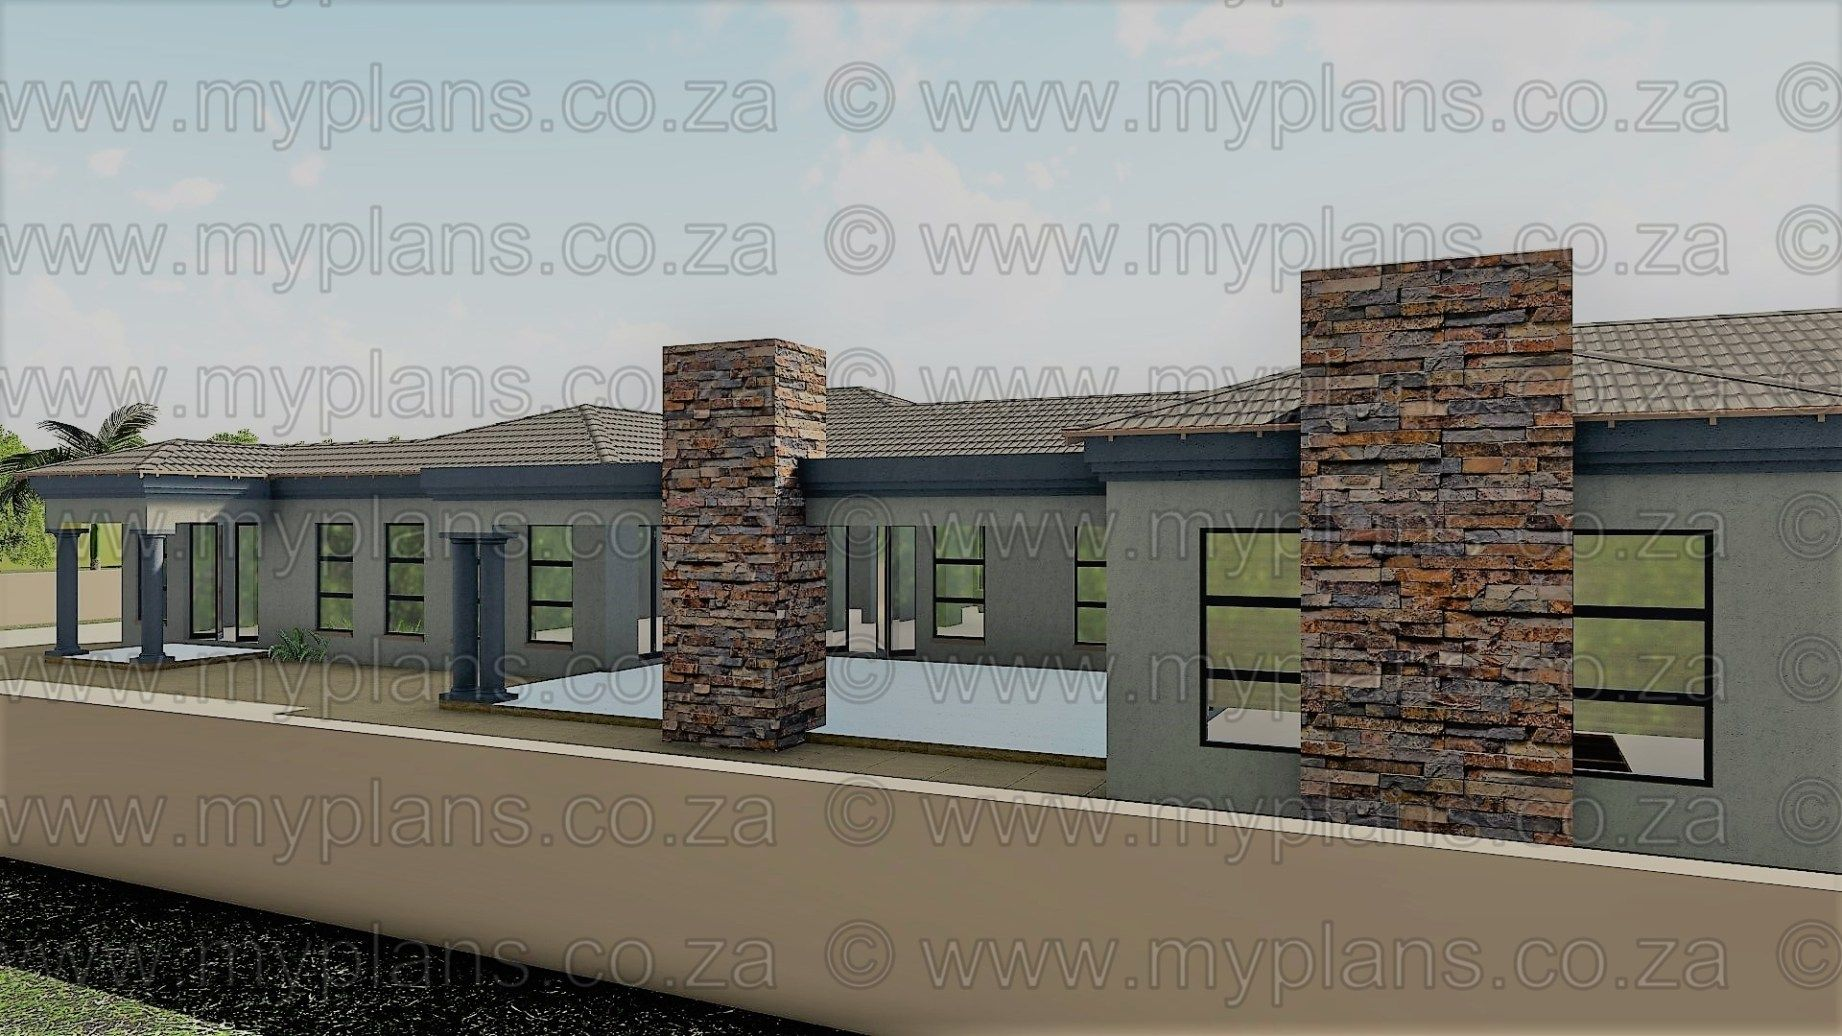 4 Bedroom House Plan MLB-058.1S | 4 bedroom house plans ... on food plans, my own house, office plans, design plans, summer plans, my house design, christmas plans, my house blueprint, my house management, wedding plans, my house books, make your own plans, my house projects, my modern house, travel plans, reading plans, dream home plans, draw your own deck plans, my house goals, diy plans,